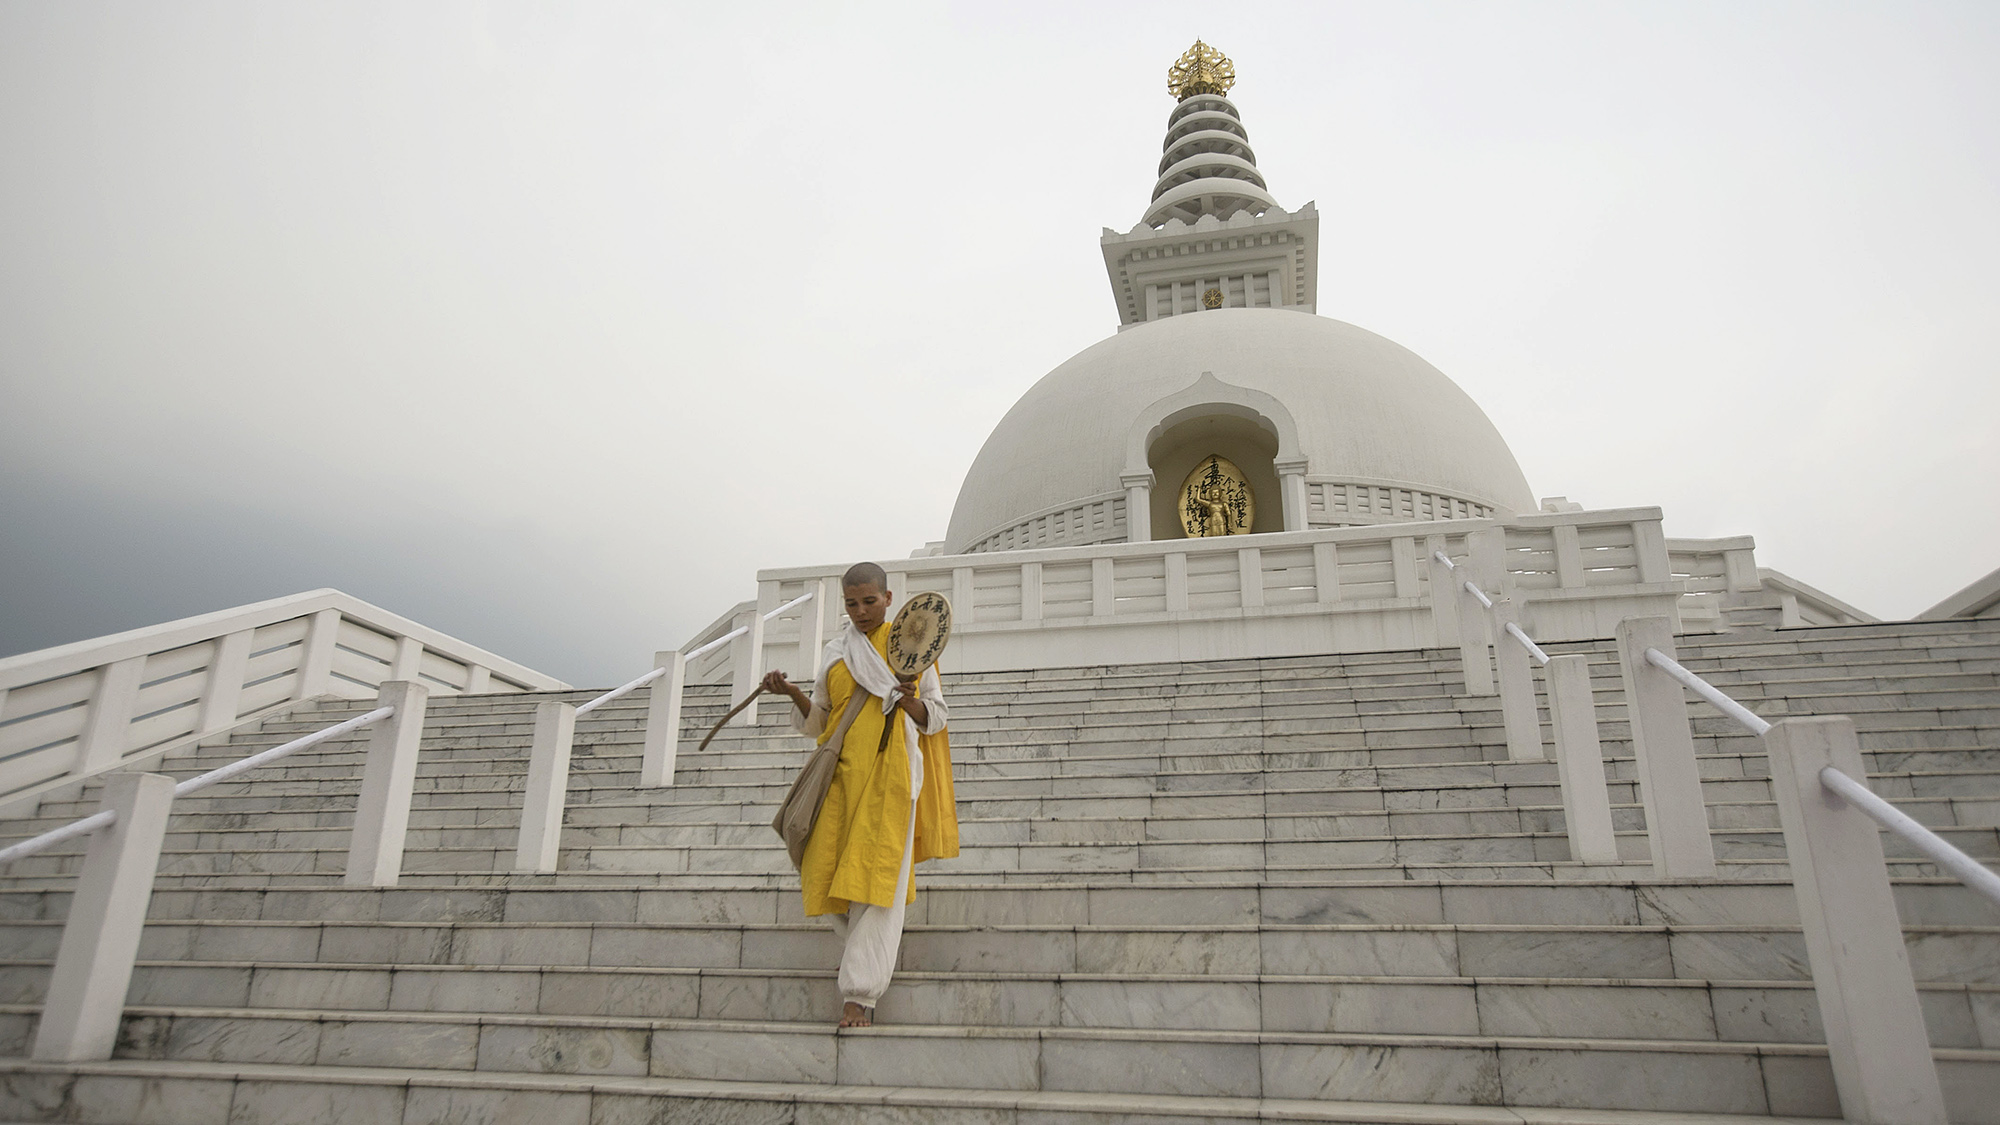 The World Peace Pagoda, designed to inspire peace and promote unity amongst all people.  Lumbini, Nepal